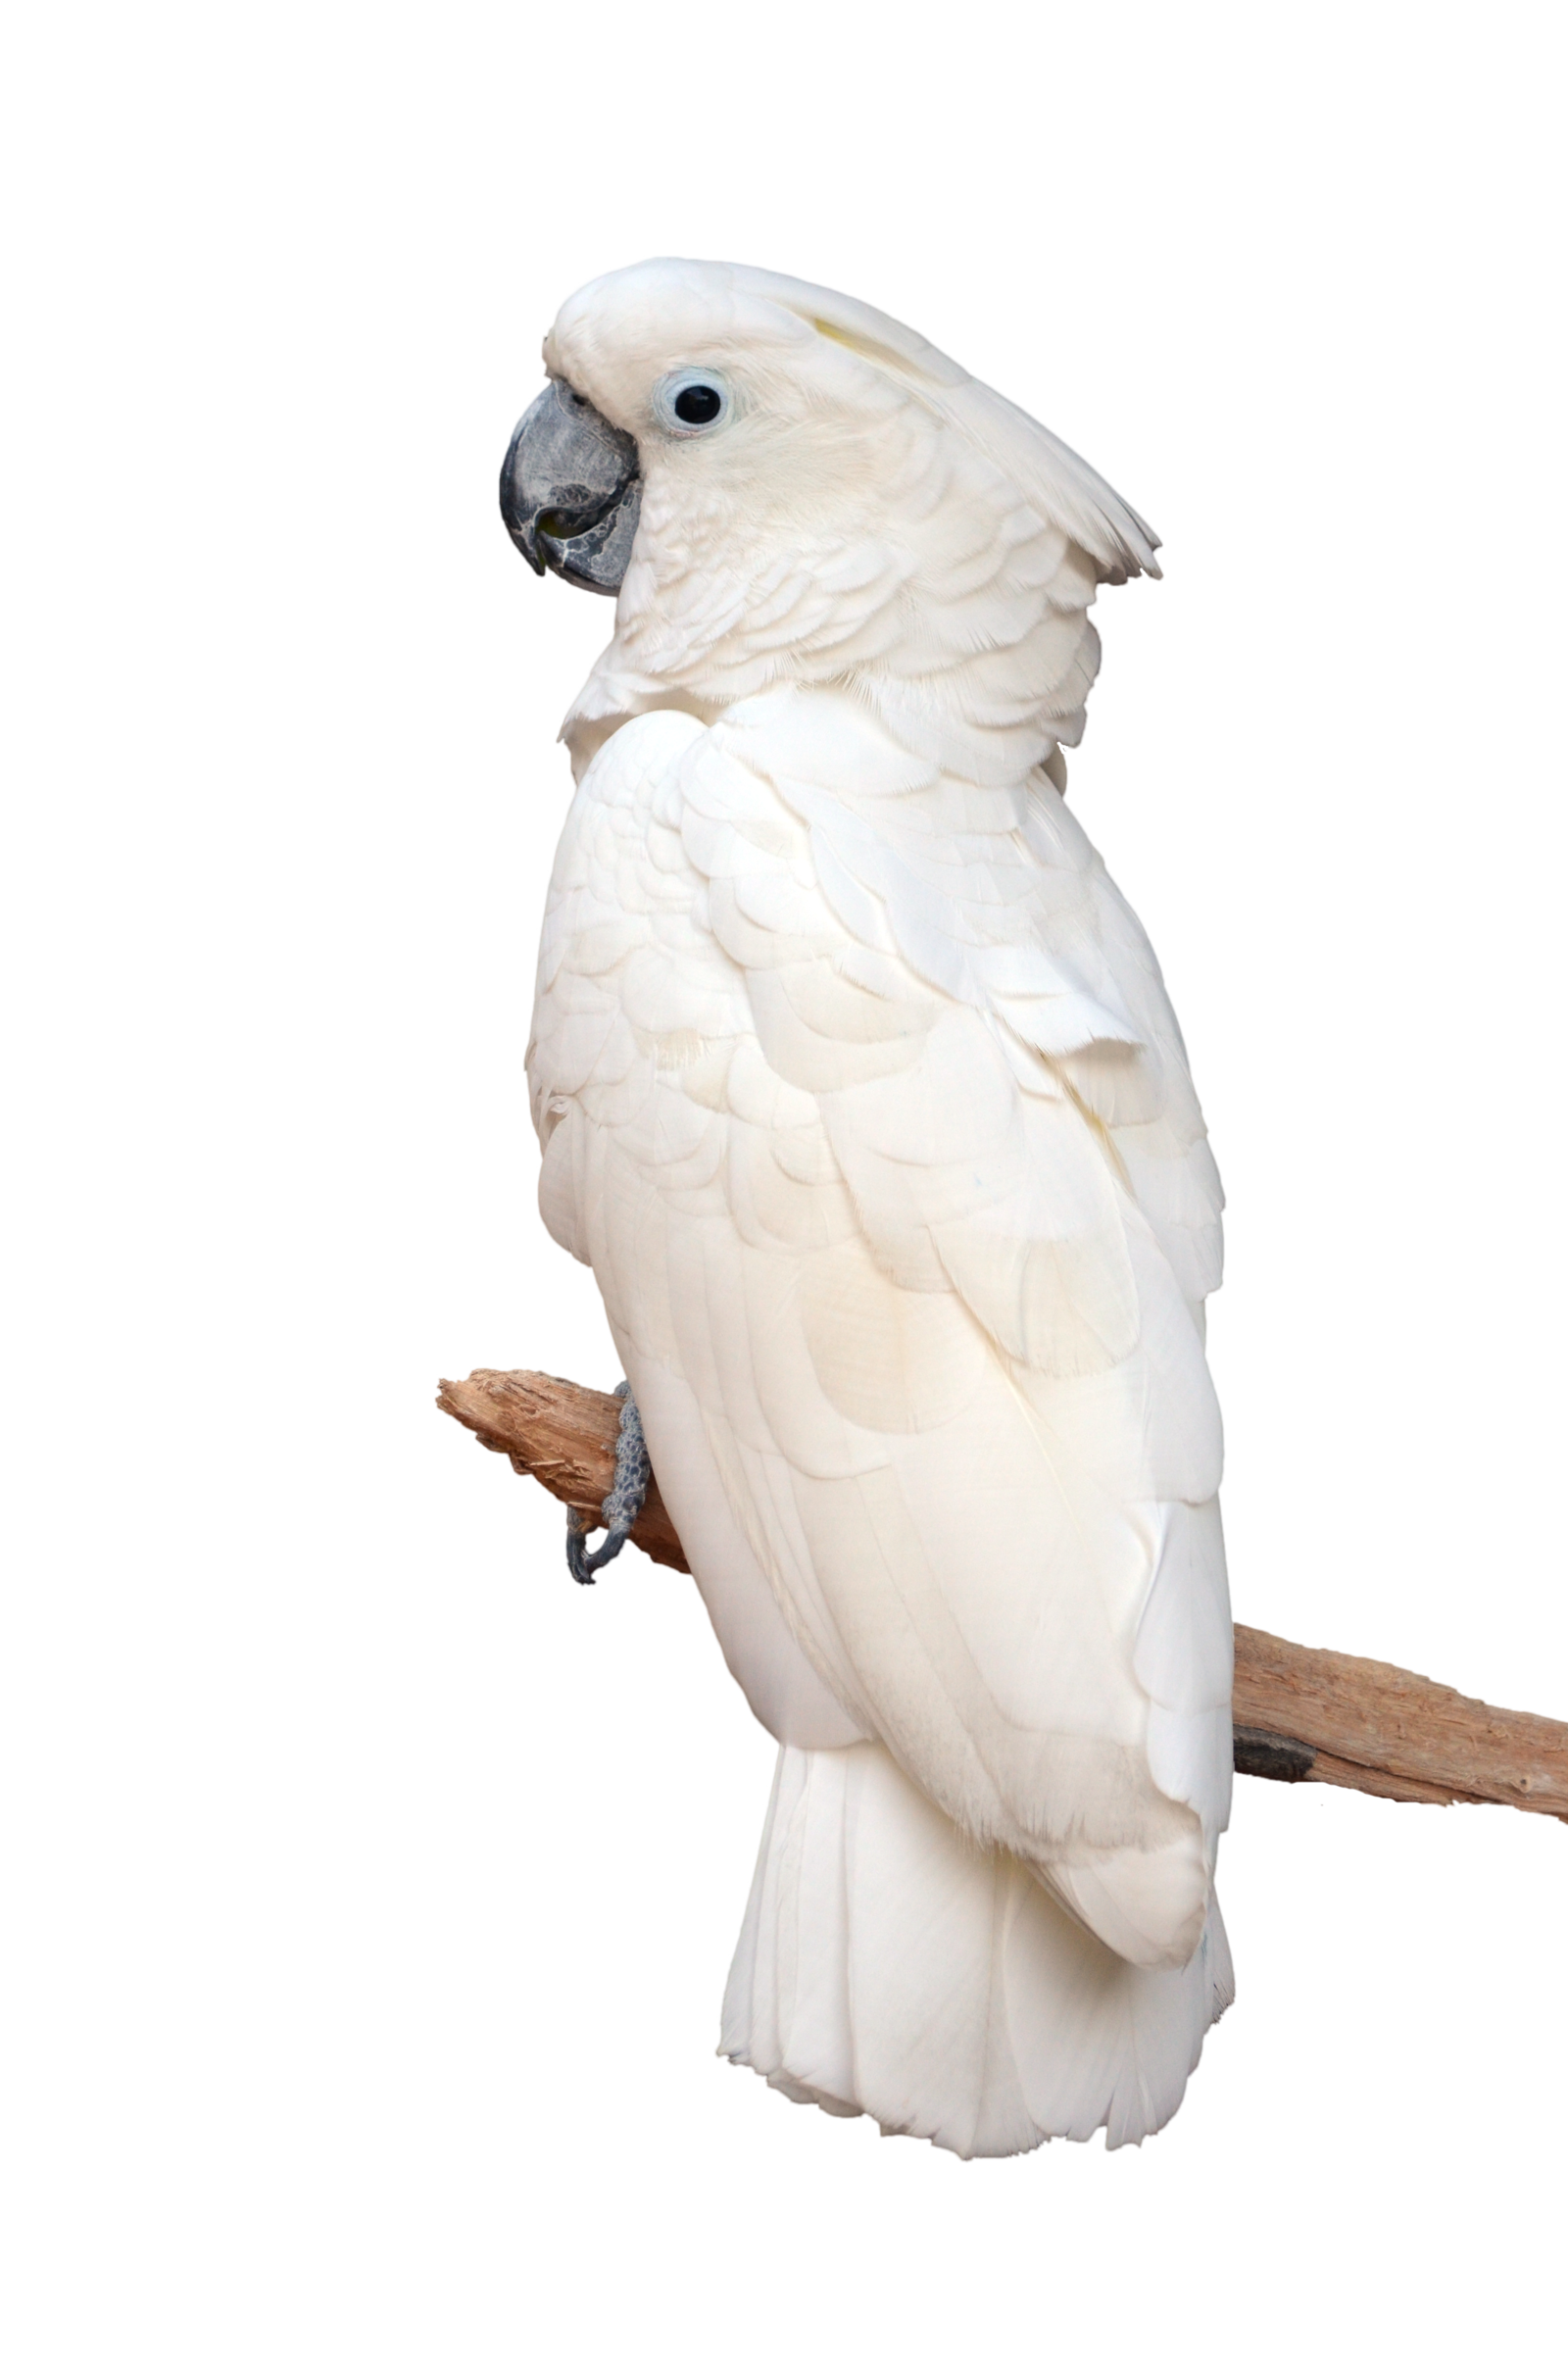 White Parrot on Perch Stock Photo 0804 PNG by annamae22 | I AM JUST ...